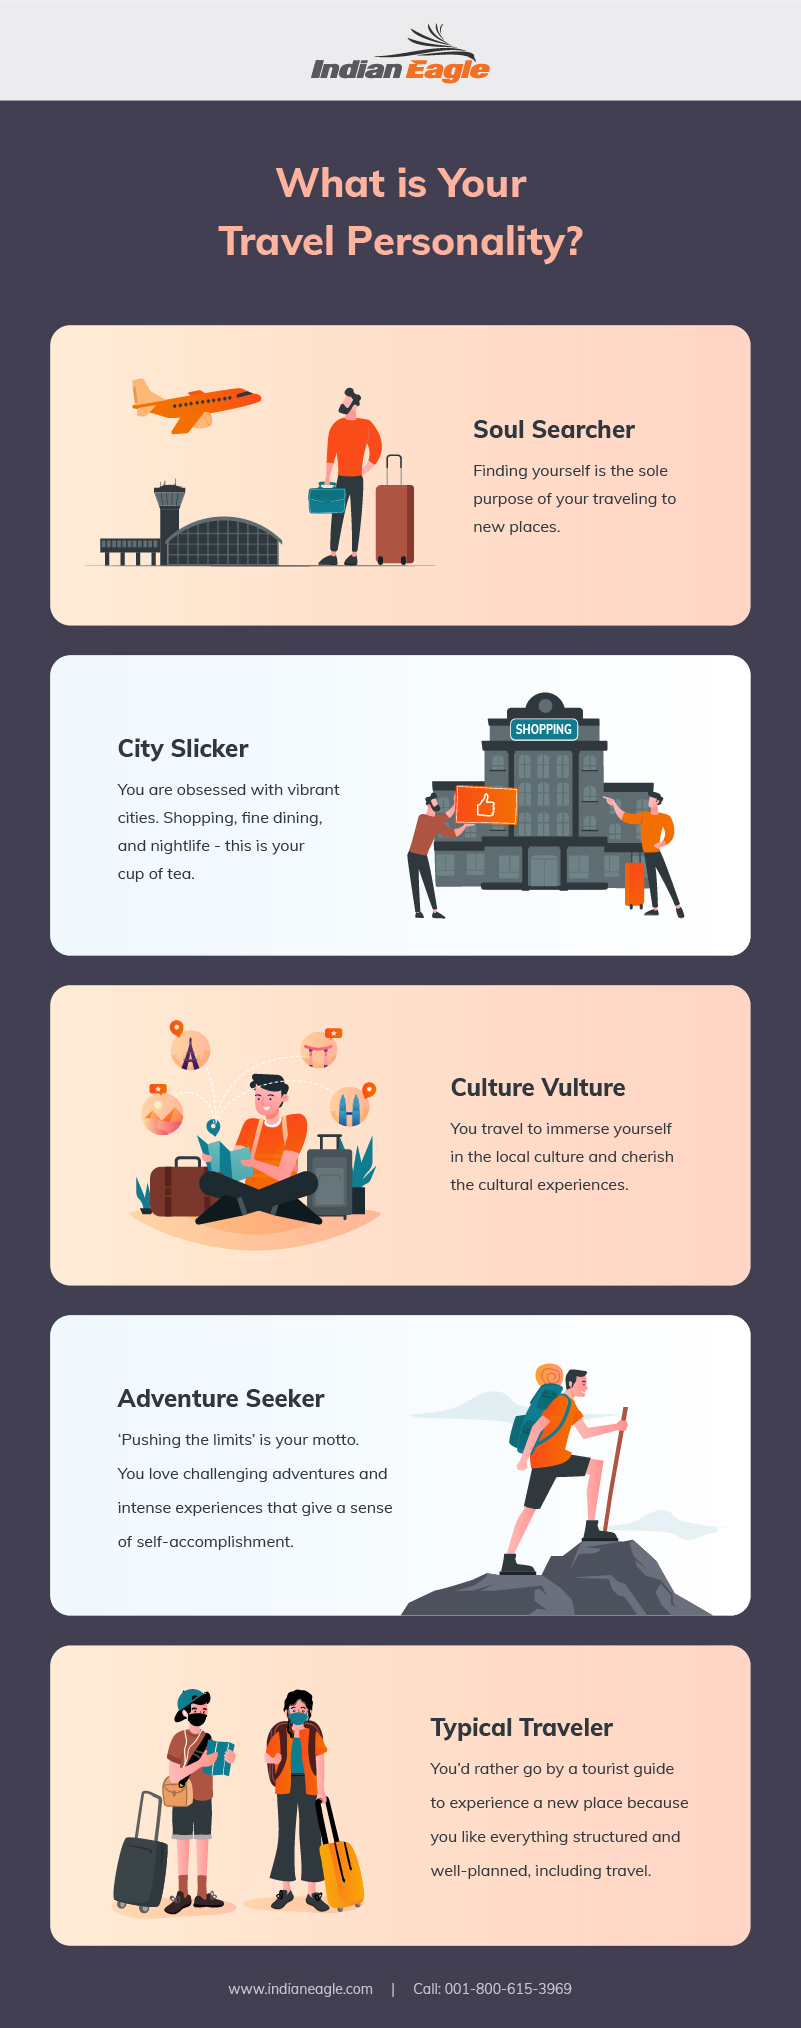 5 Types of Travel Personalities: What Kind Of Traveler Are You?